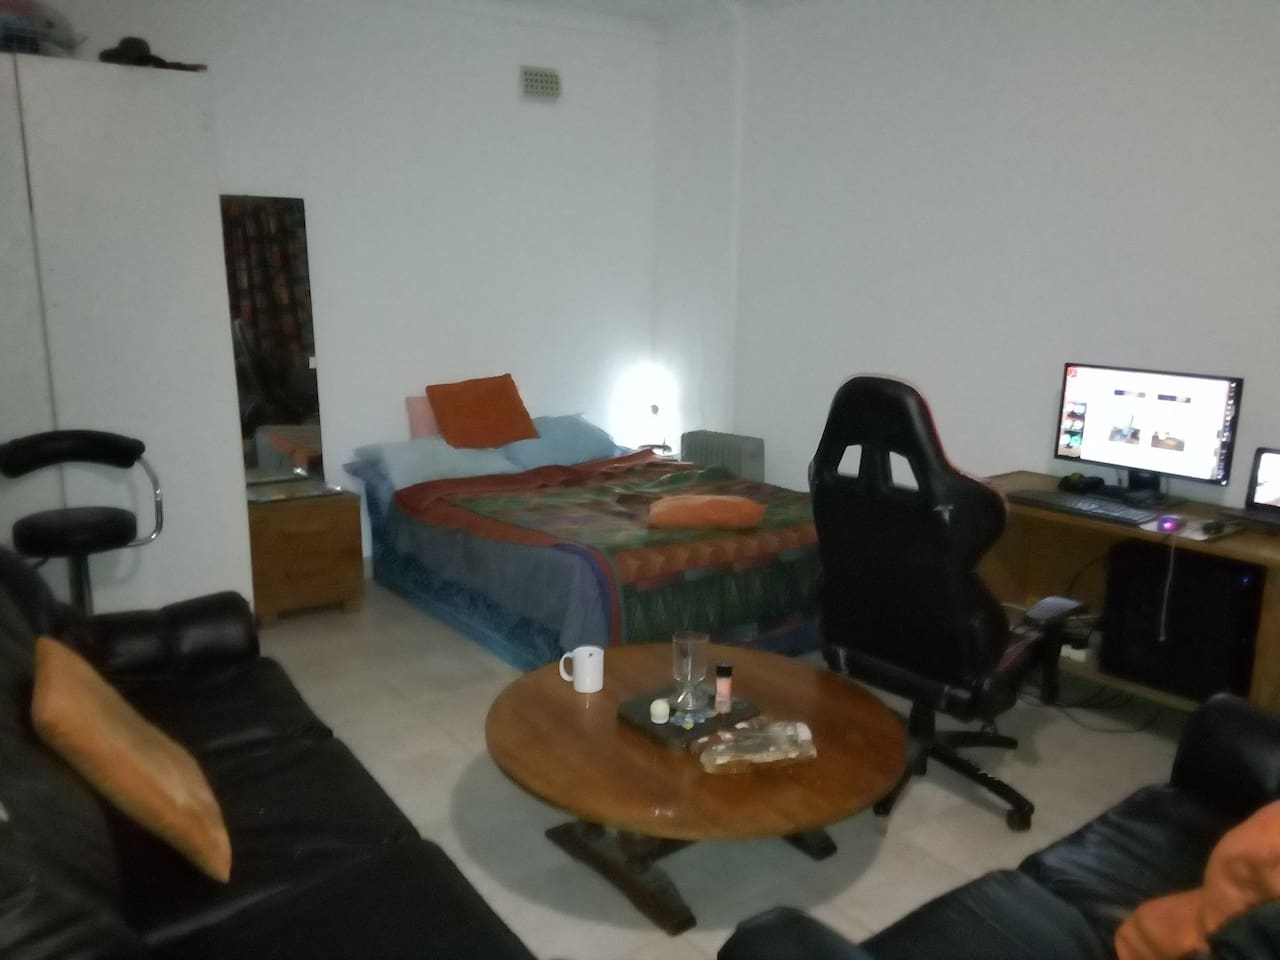 Private space with room for relaxing and entertainment